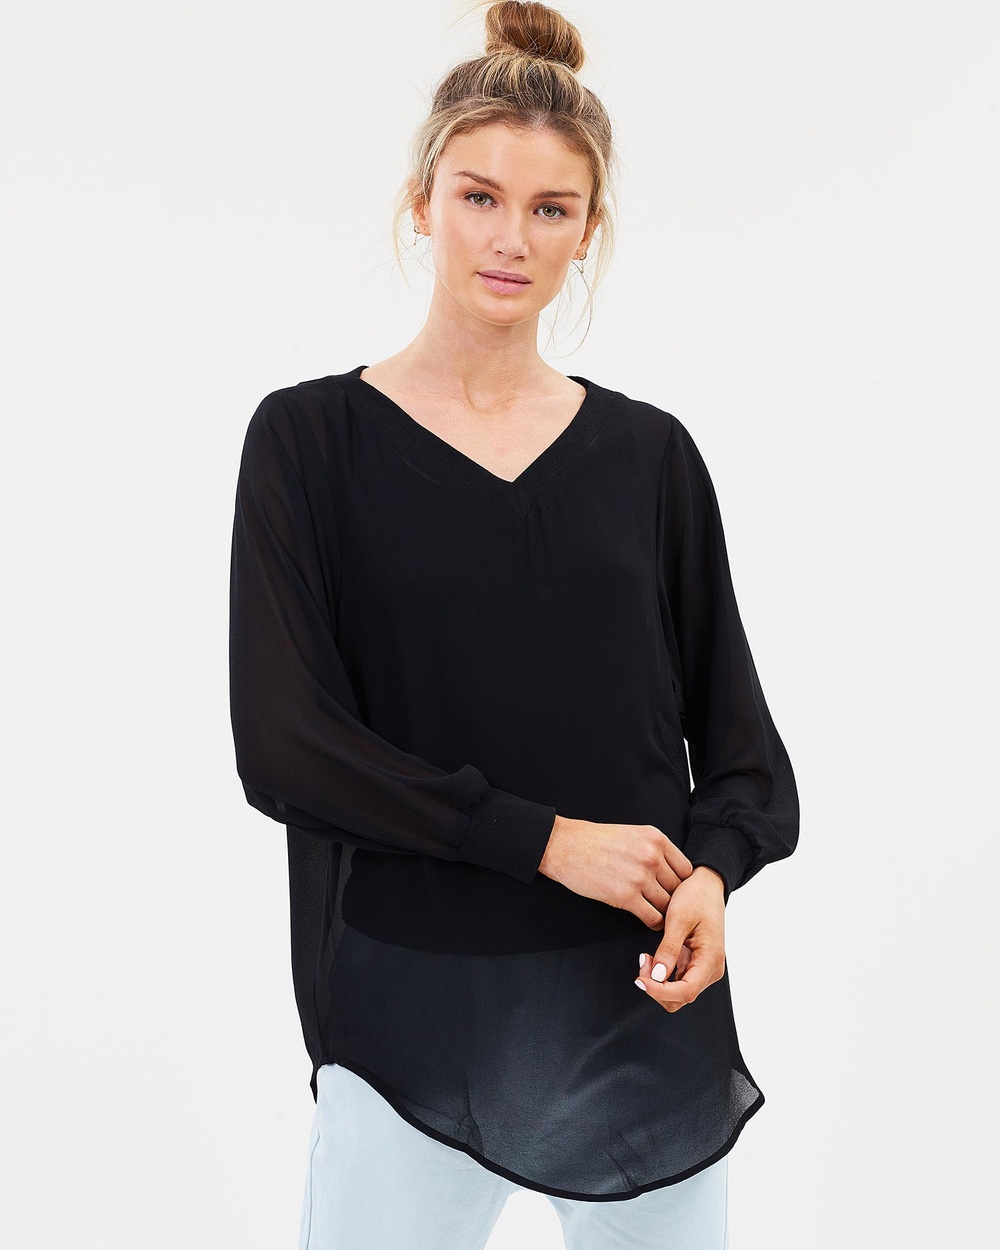 Lincoln St The Sheer 2 Way Pullover Tops Black The Sheer 2-Way Pullover